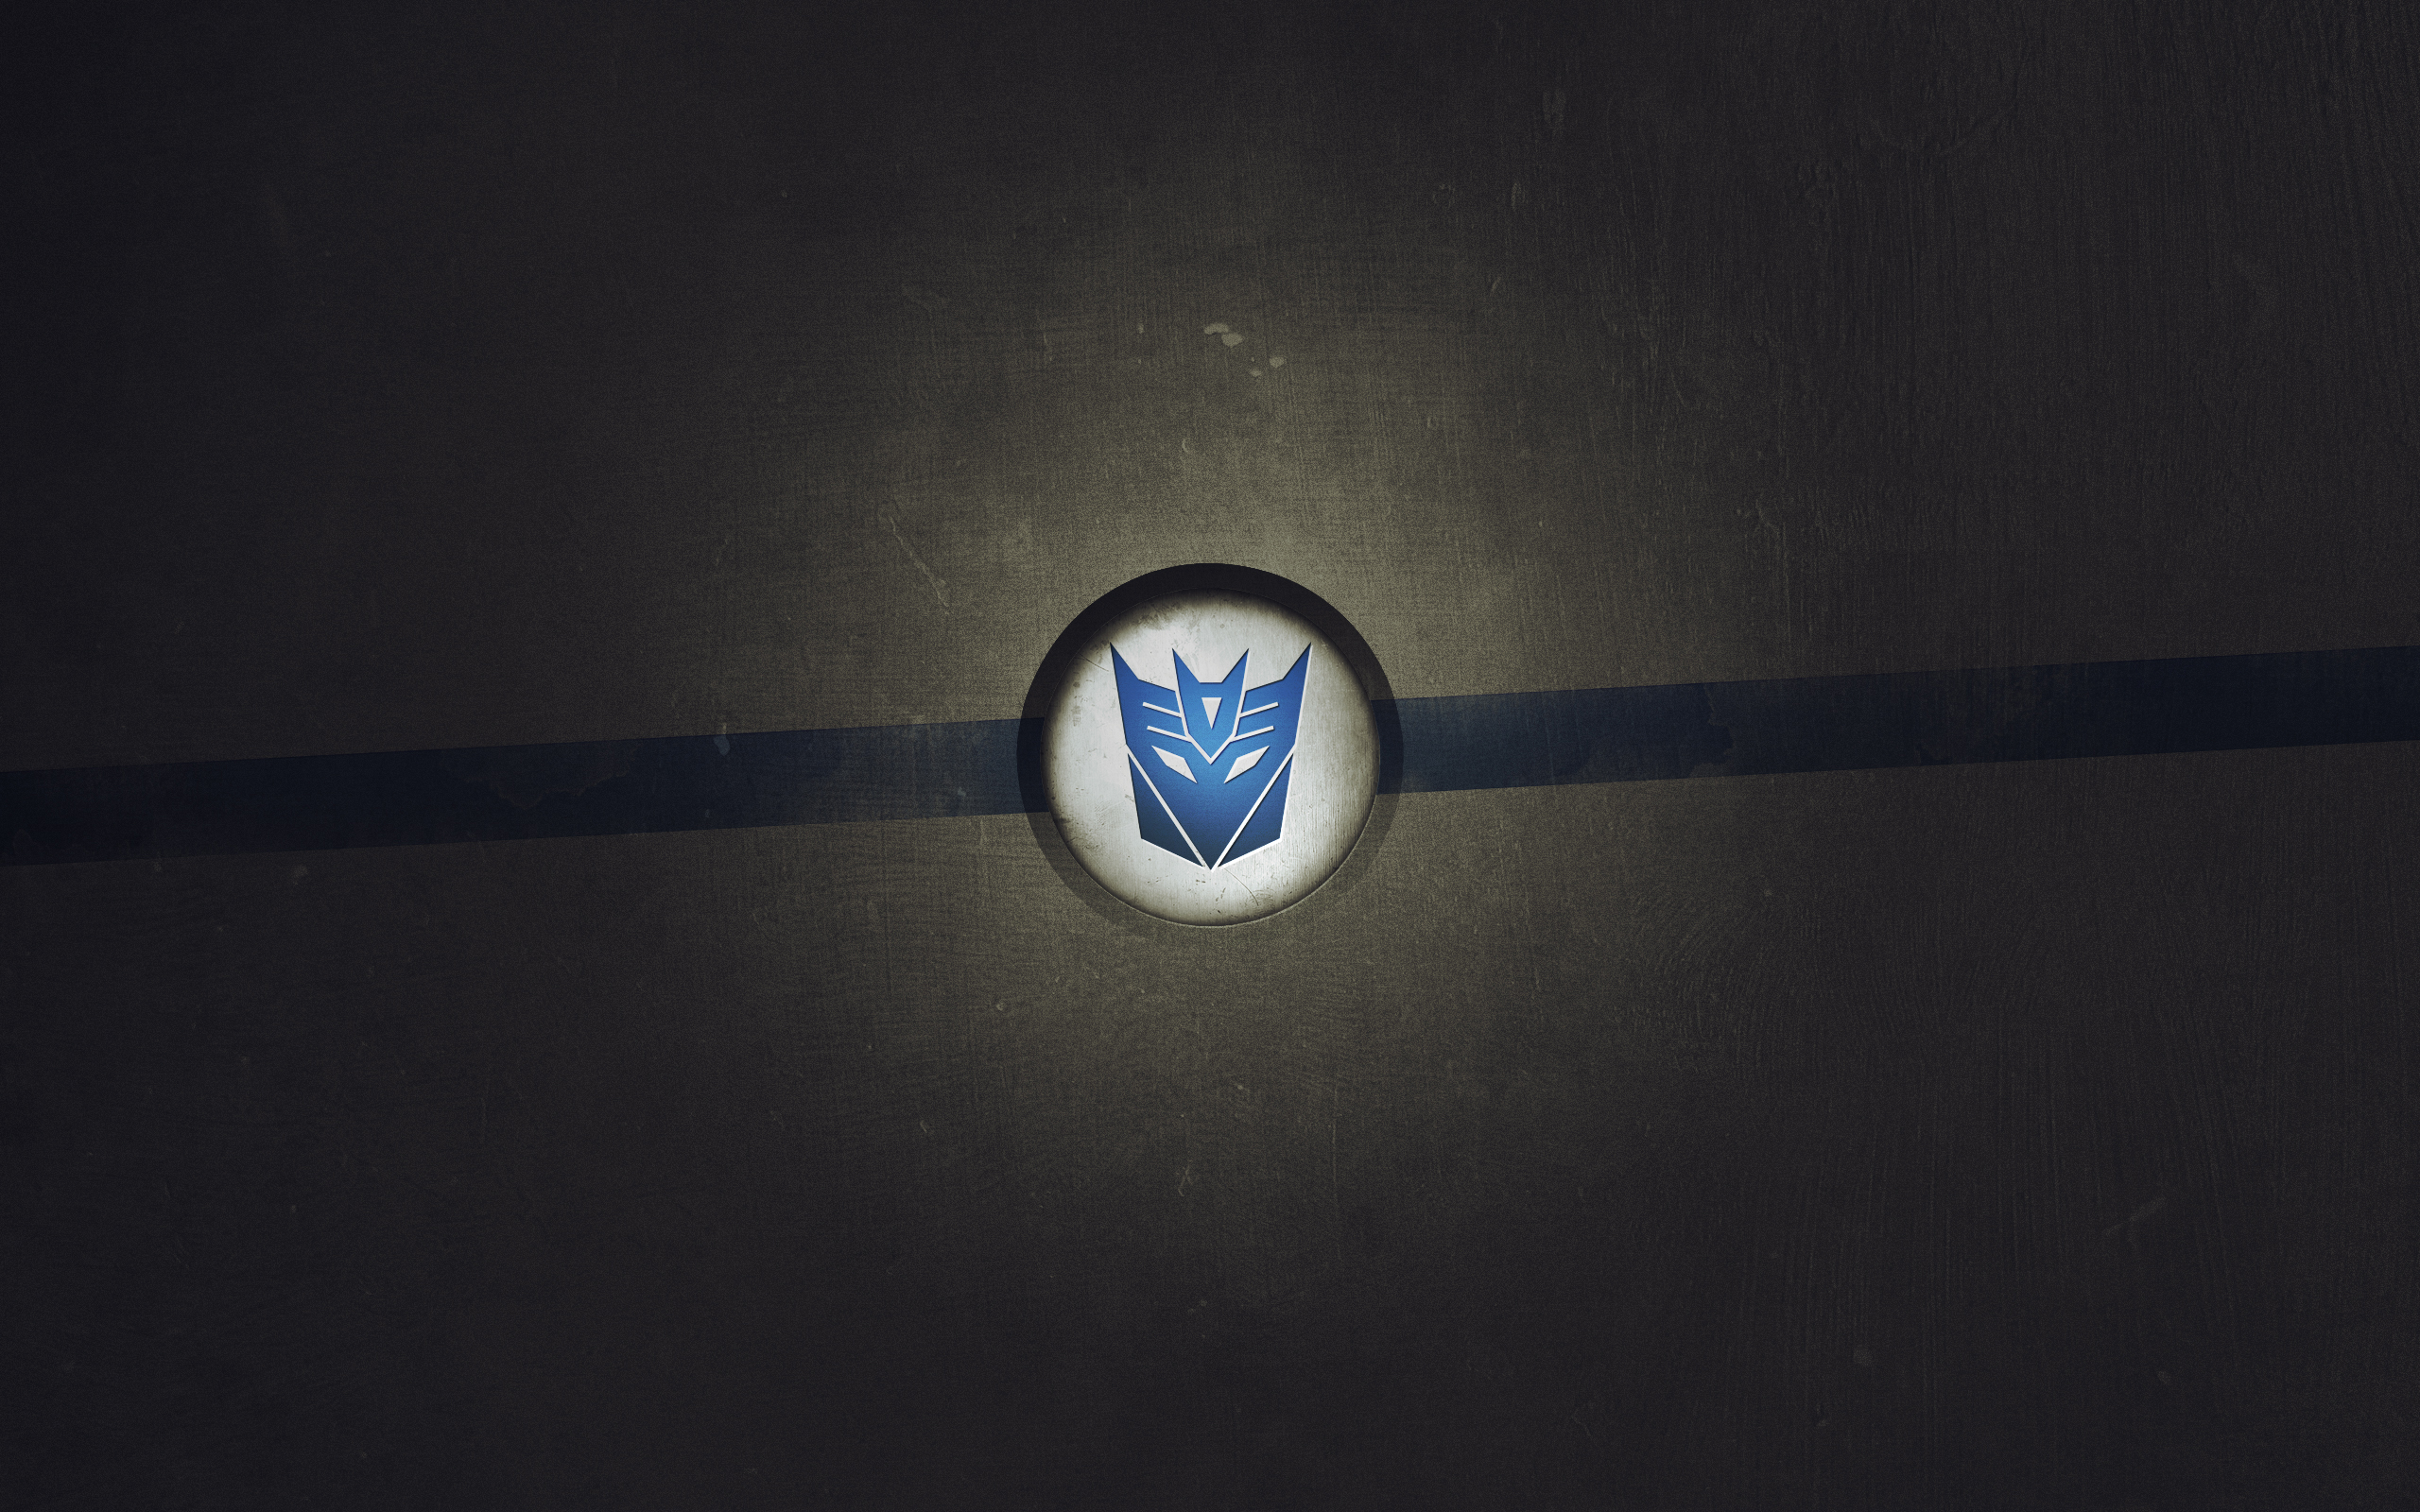 2560x1440 Transformers Logo Youtube Channel Cover